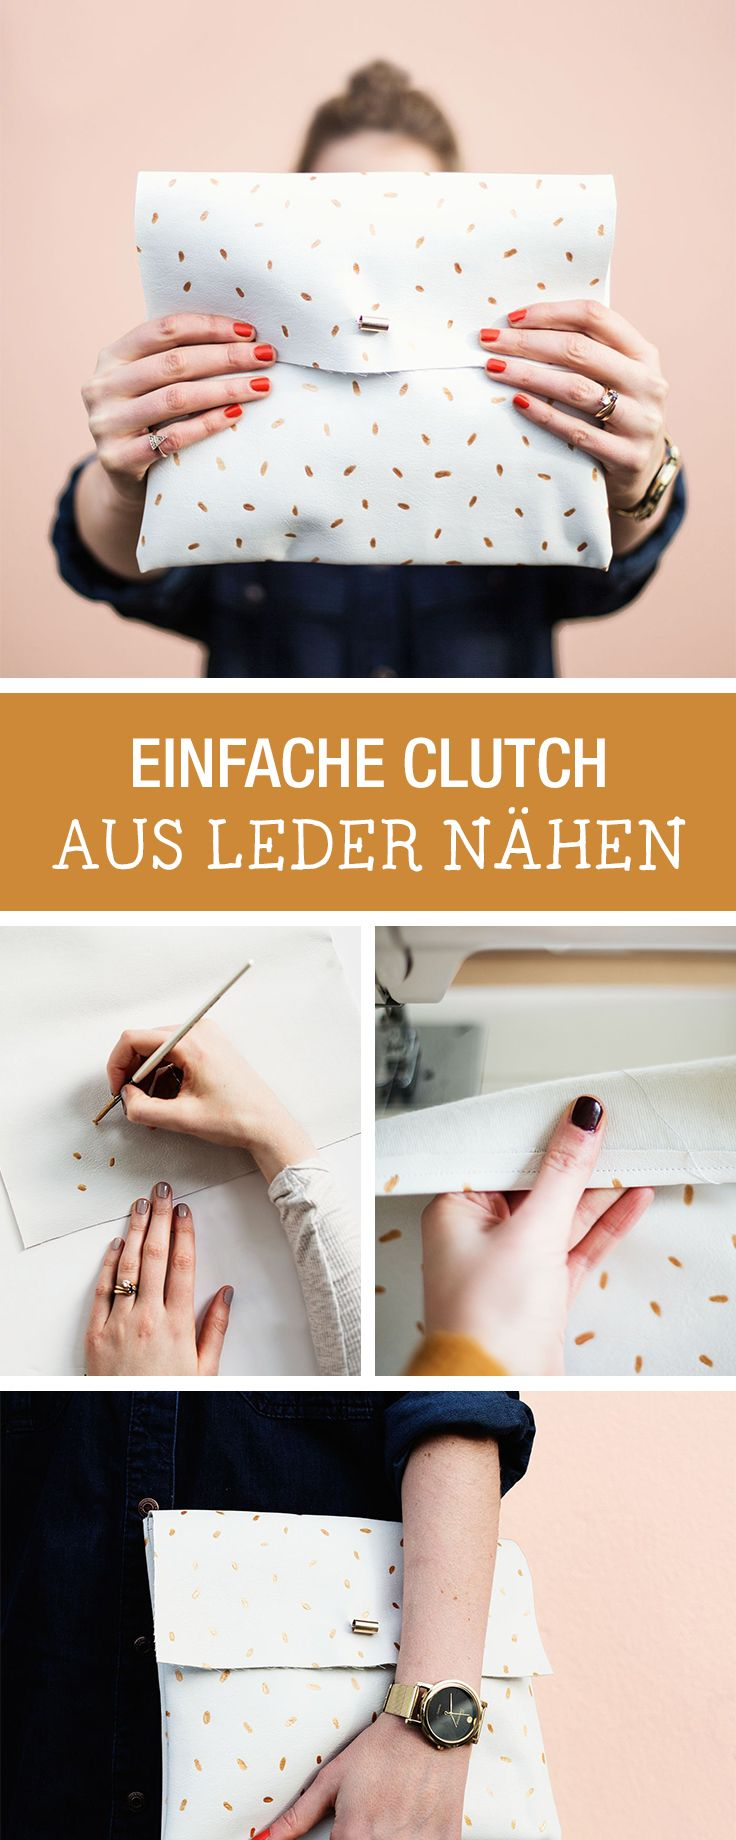 kostenlose n hanleitung f r eine clutch aus leder einfache n hanleitung easy sewing tutorial. Black Bedroom Furniture Sets. Home Design Ideas